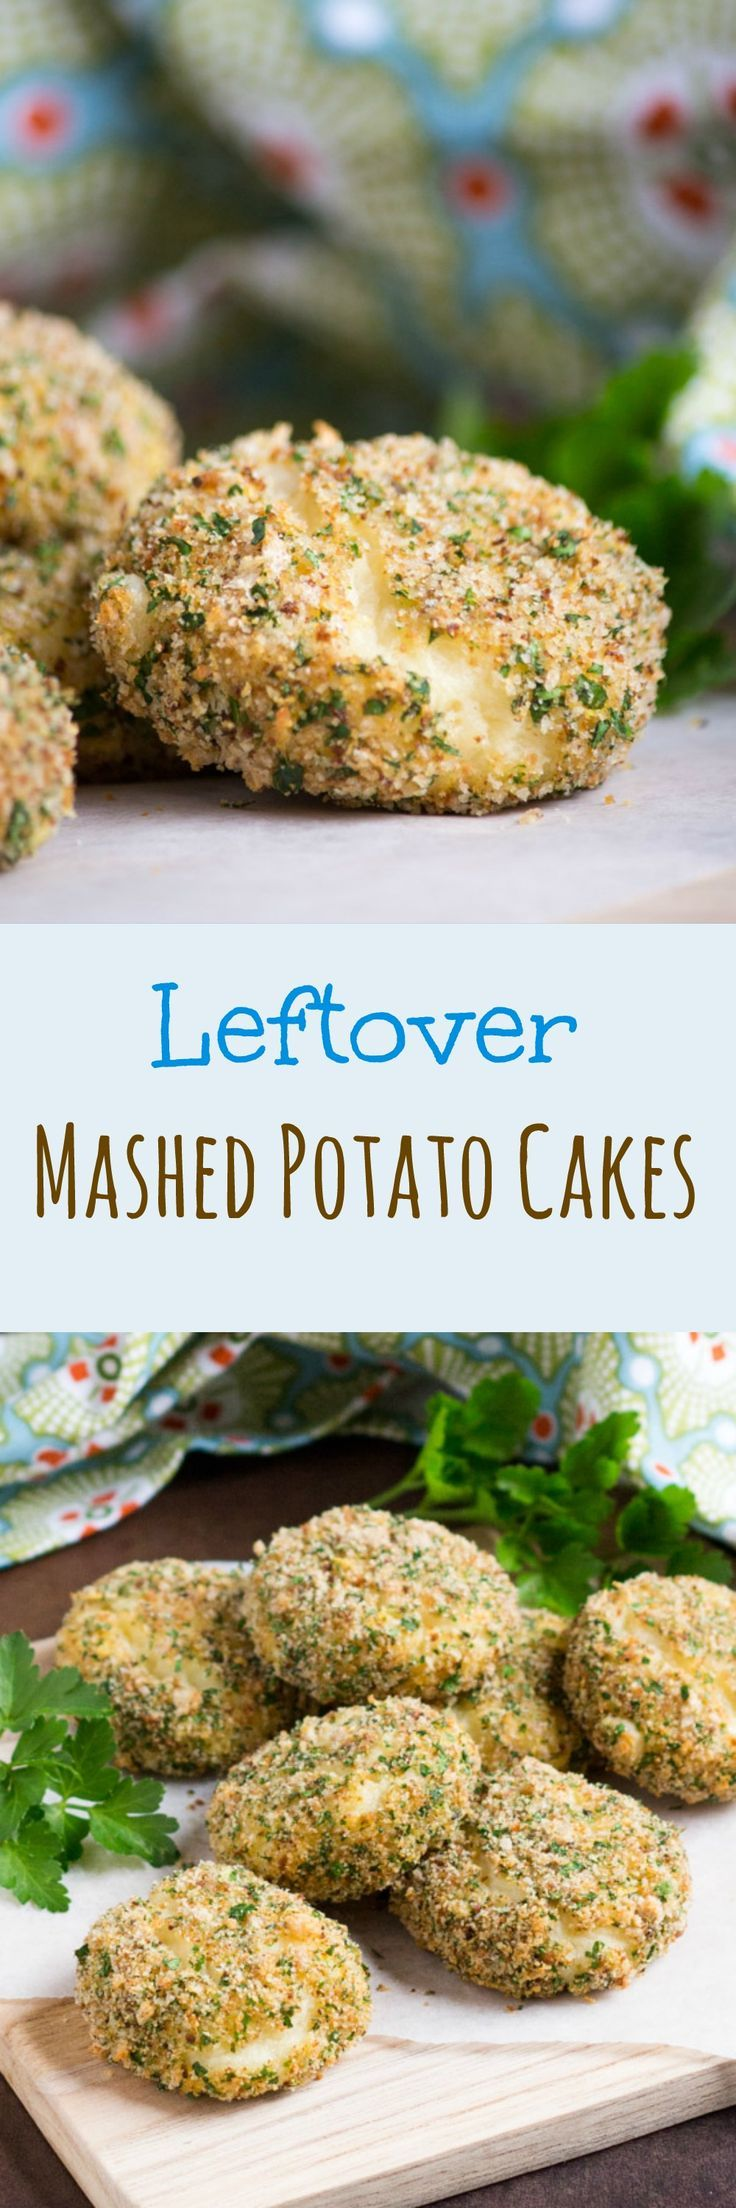 Leftover Mashed Potato Cakes.  A great use for excess mashed potato, but so good you might mash potatoes just to make them.